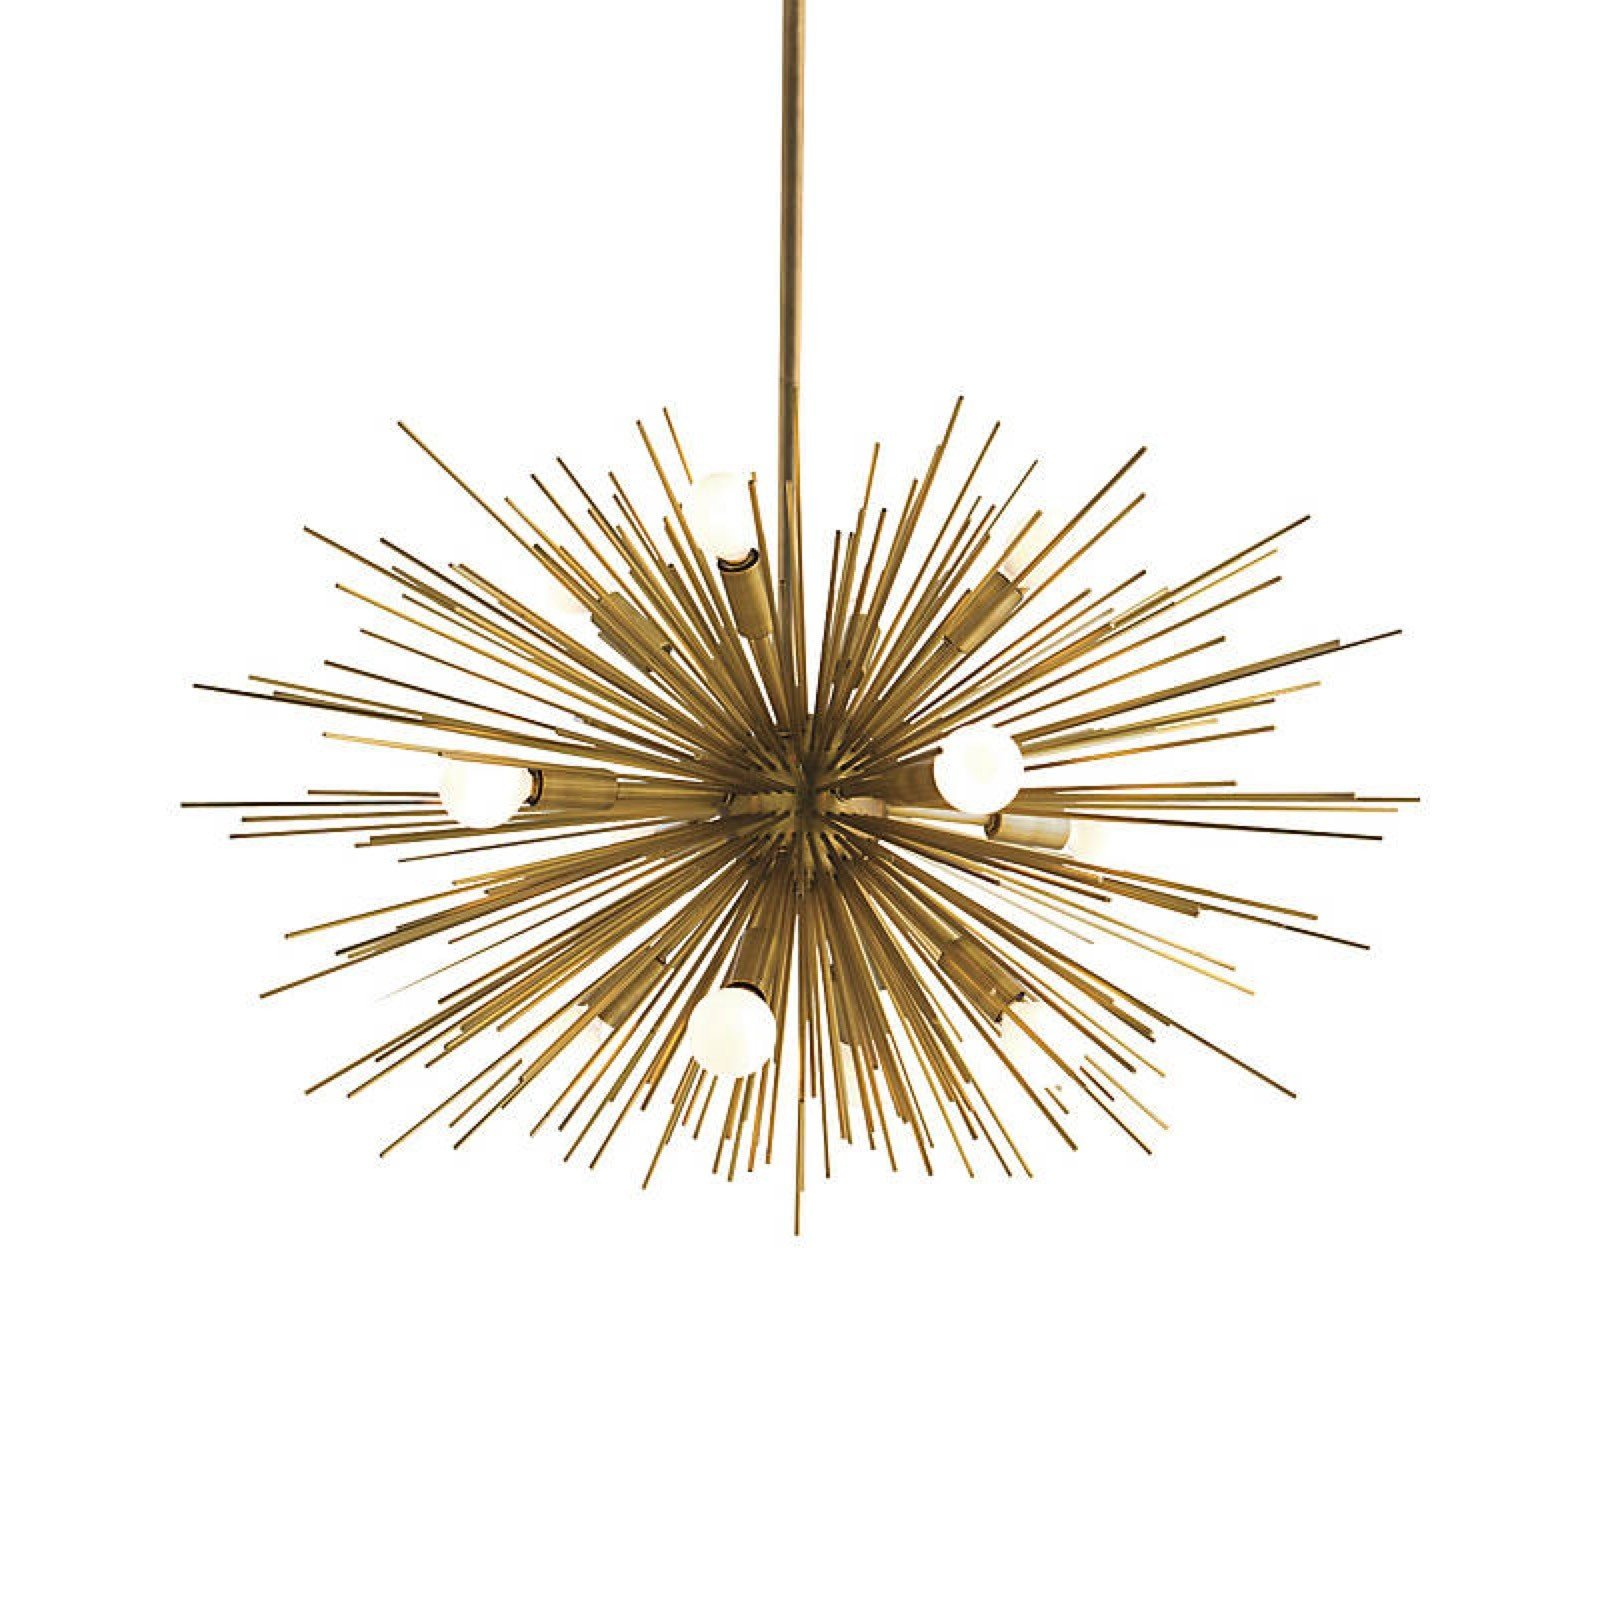 Discover the best modo chandelier products on Dwell